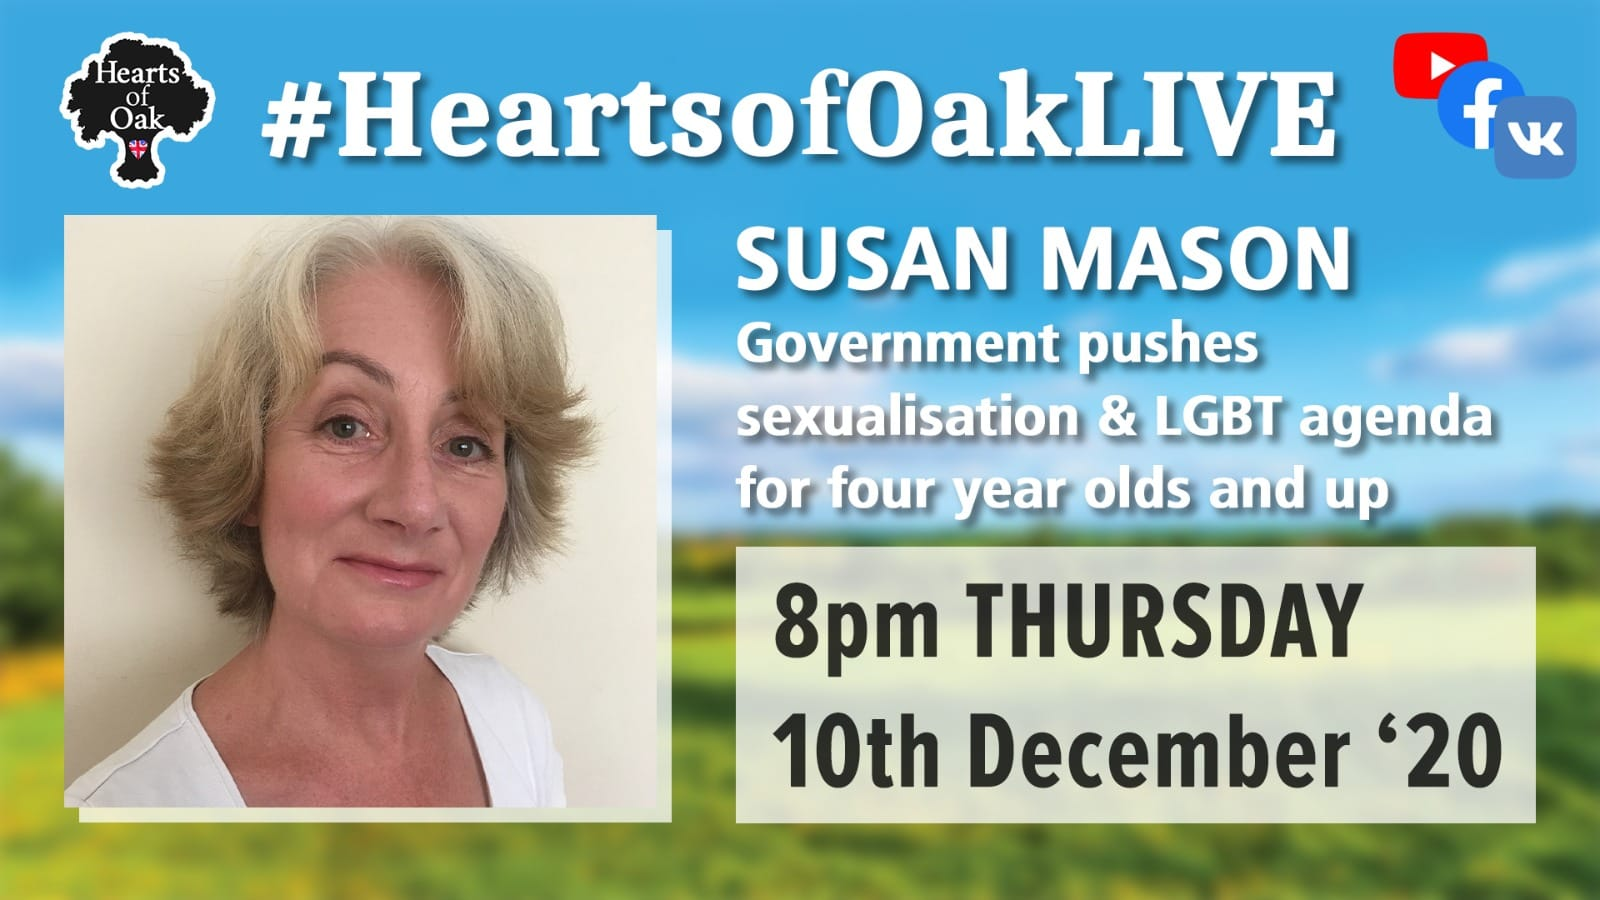 Susan Mason - Government pushes sexualisation and LGBT agenda on four year olds